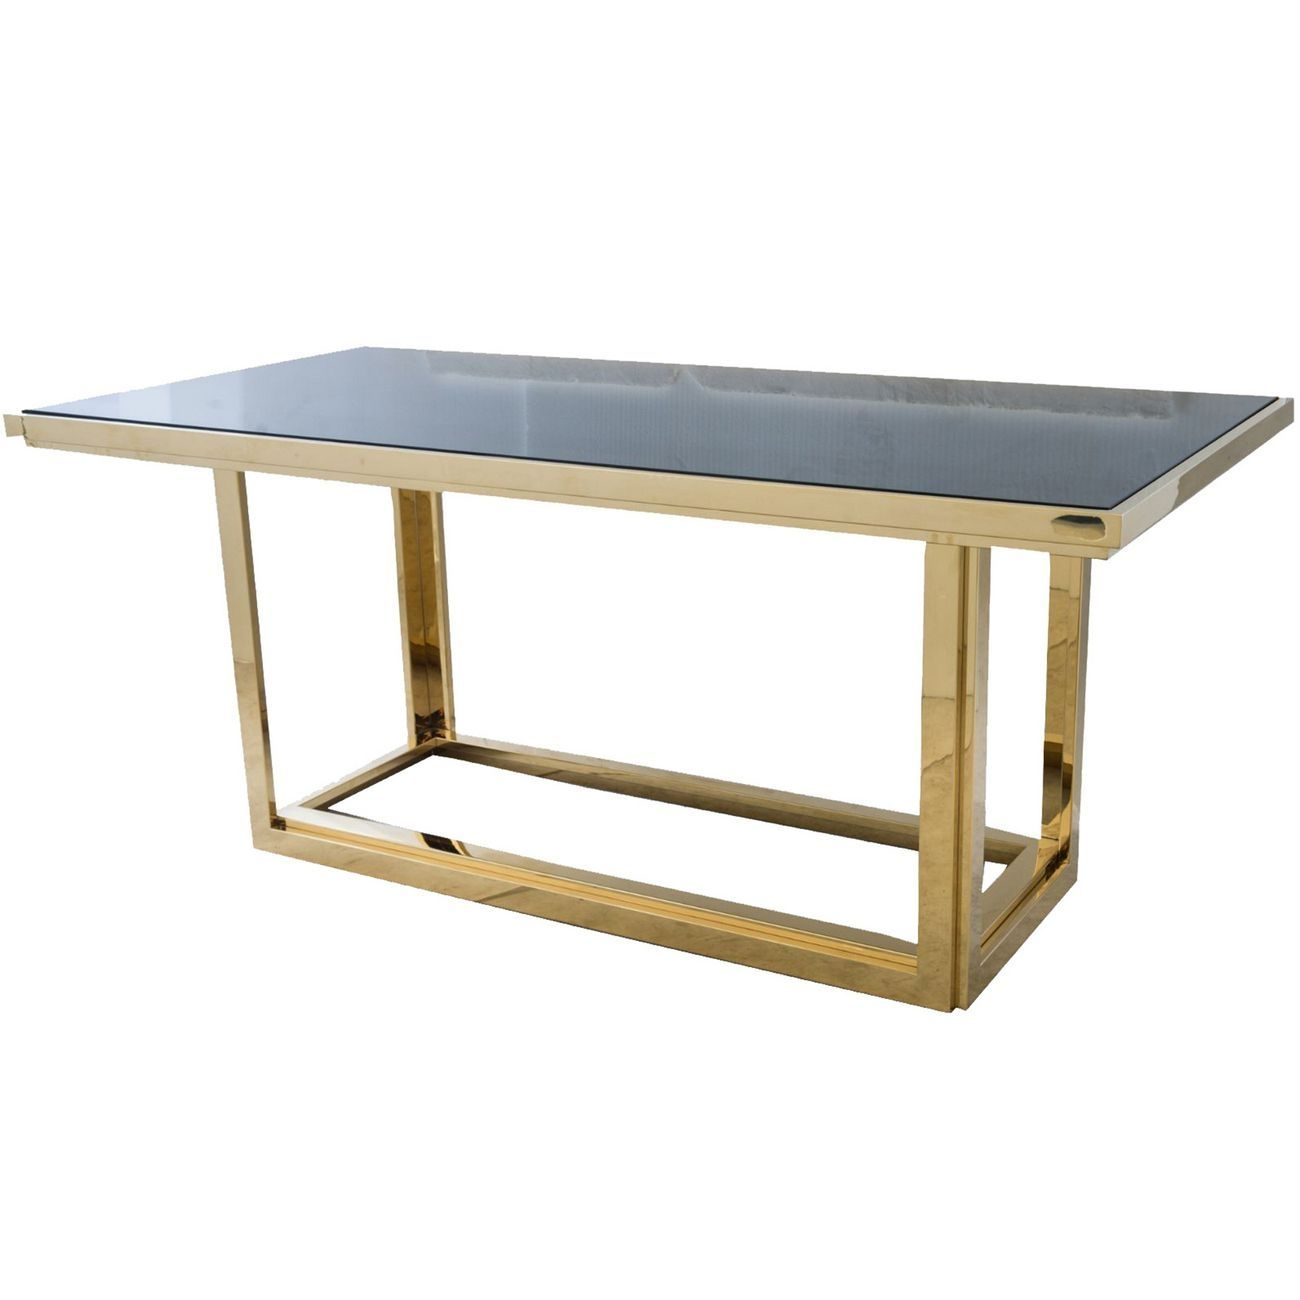 Gatsby Rectangular Gold Dining Table With Smoked Glass Libra Gold Dining Table With Smoked Glass Style Our Home